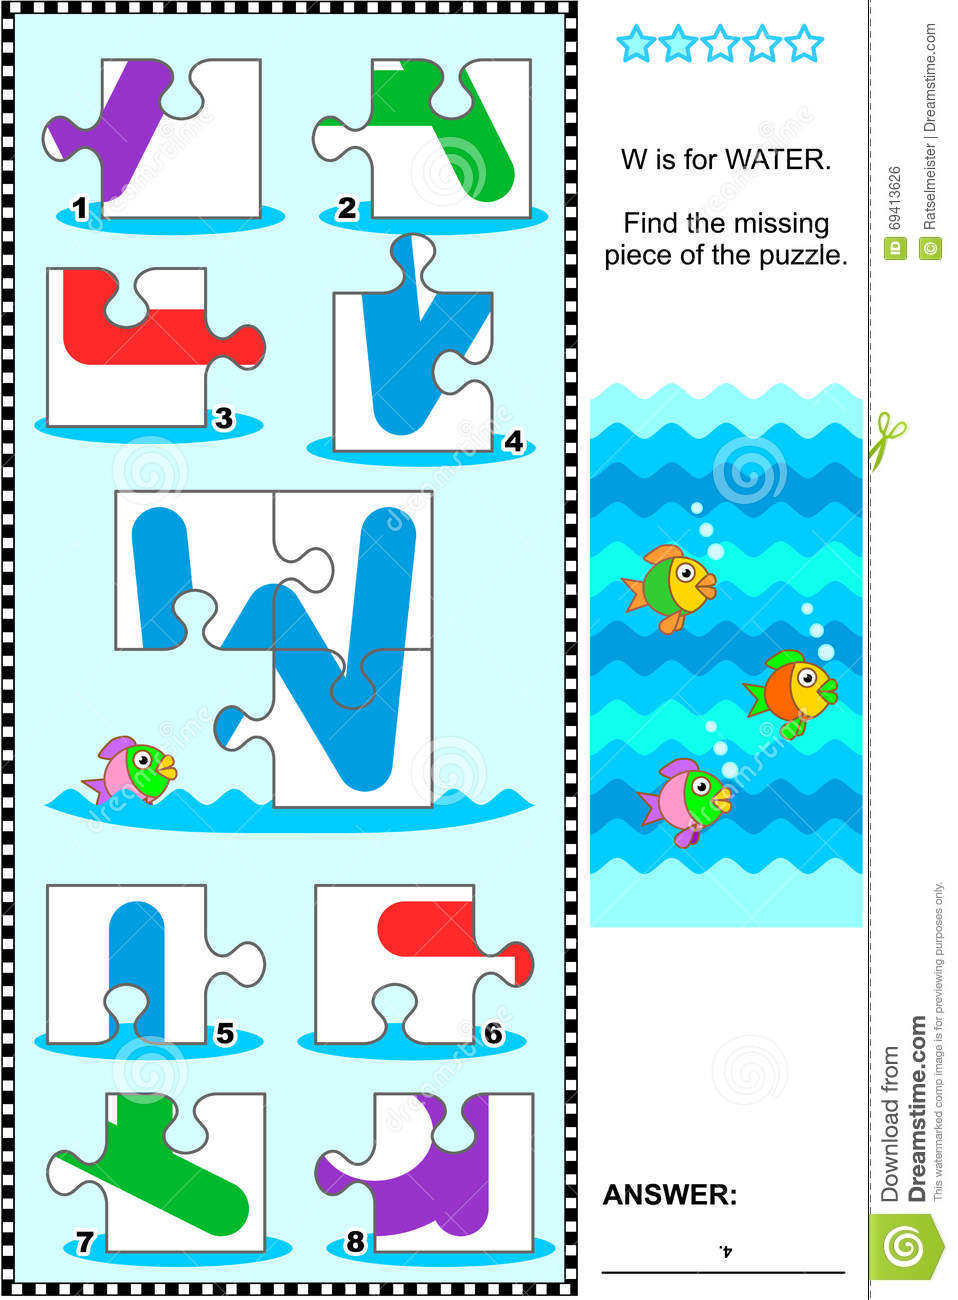 ABC learning educational puzzle - letter W (water)